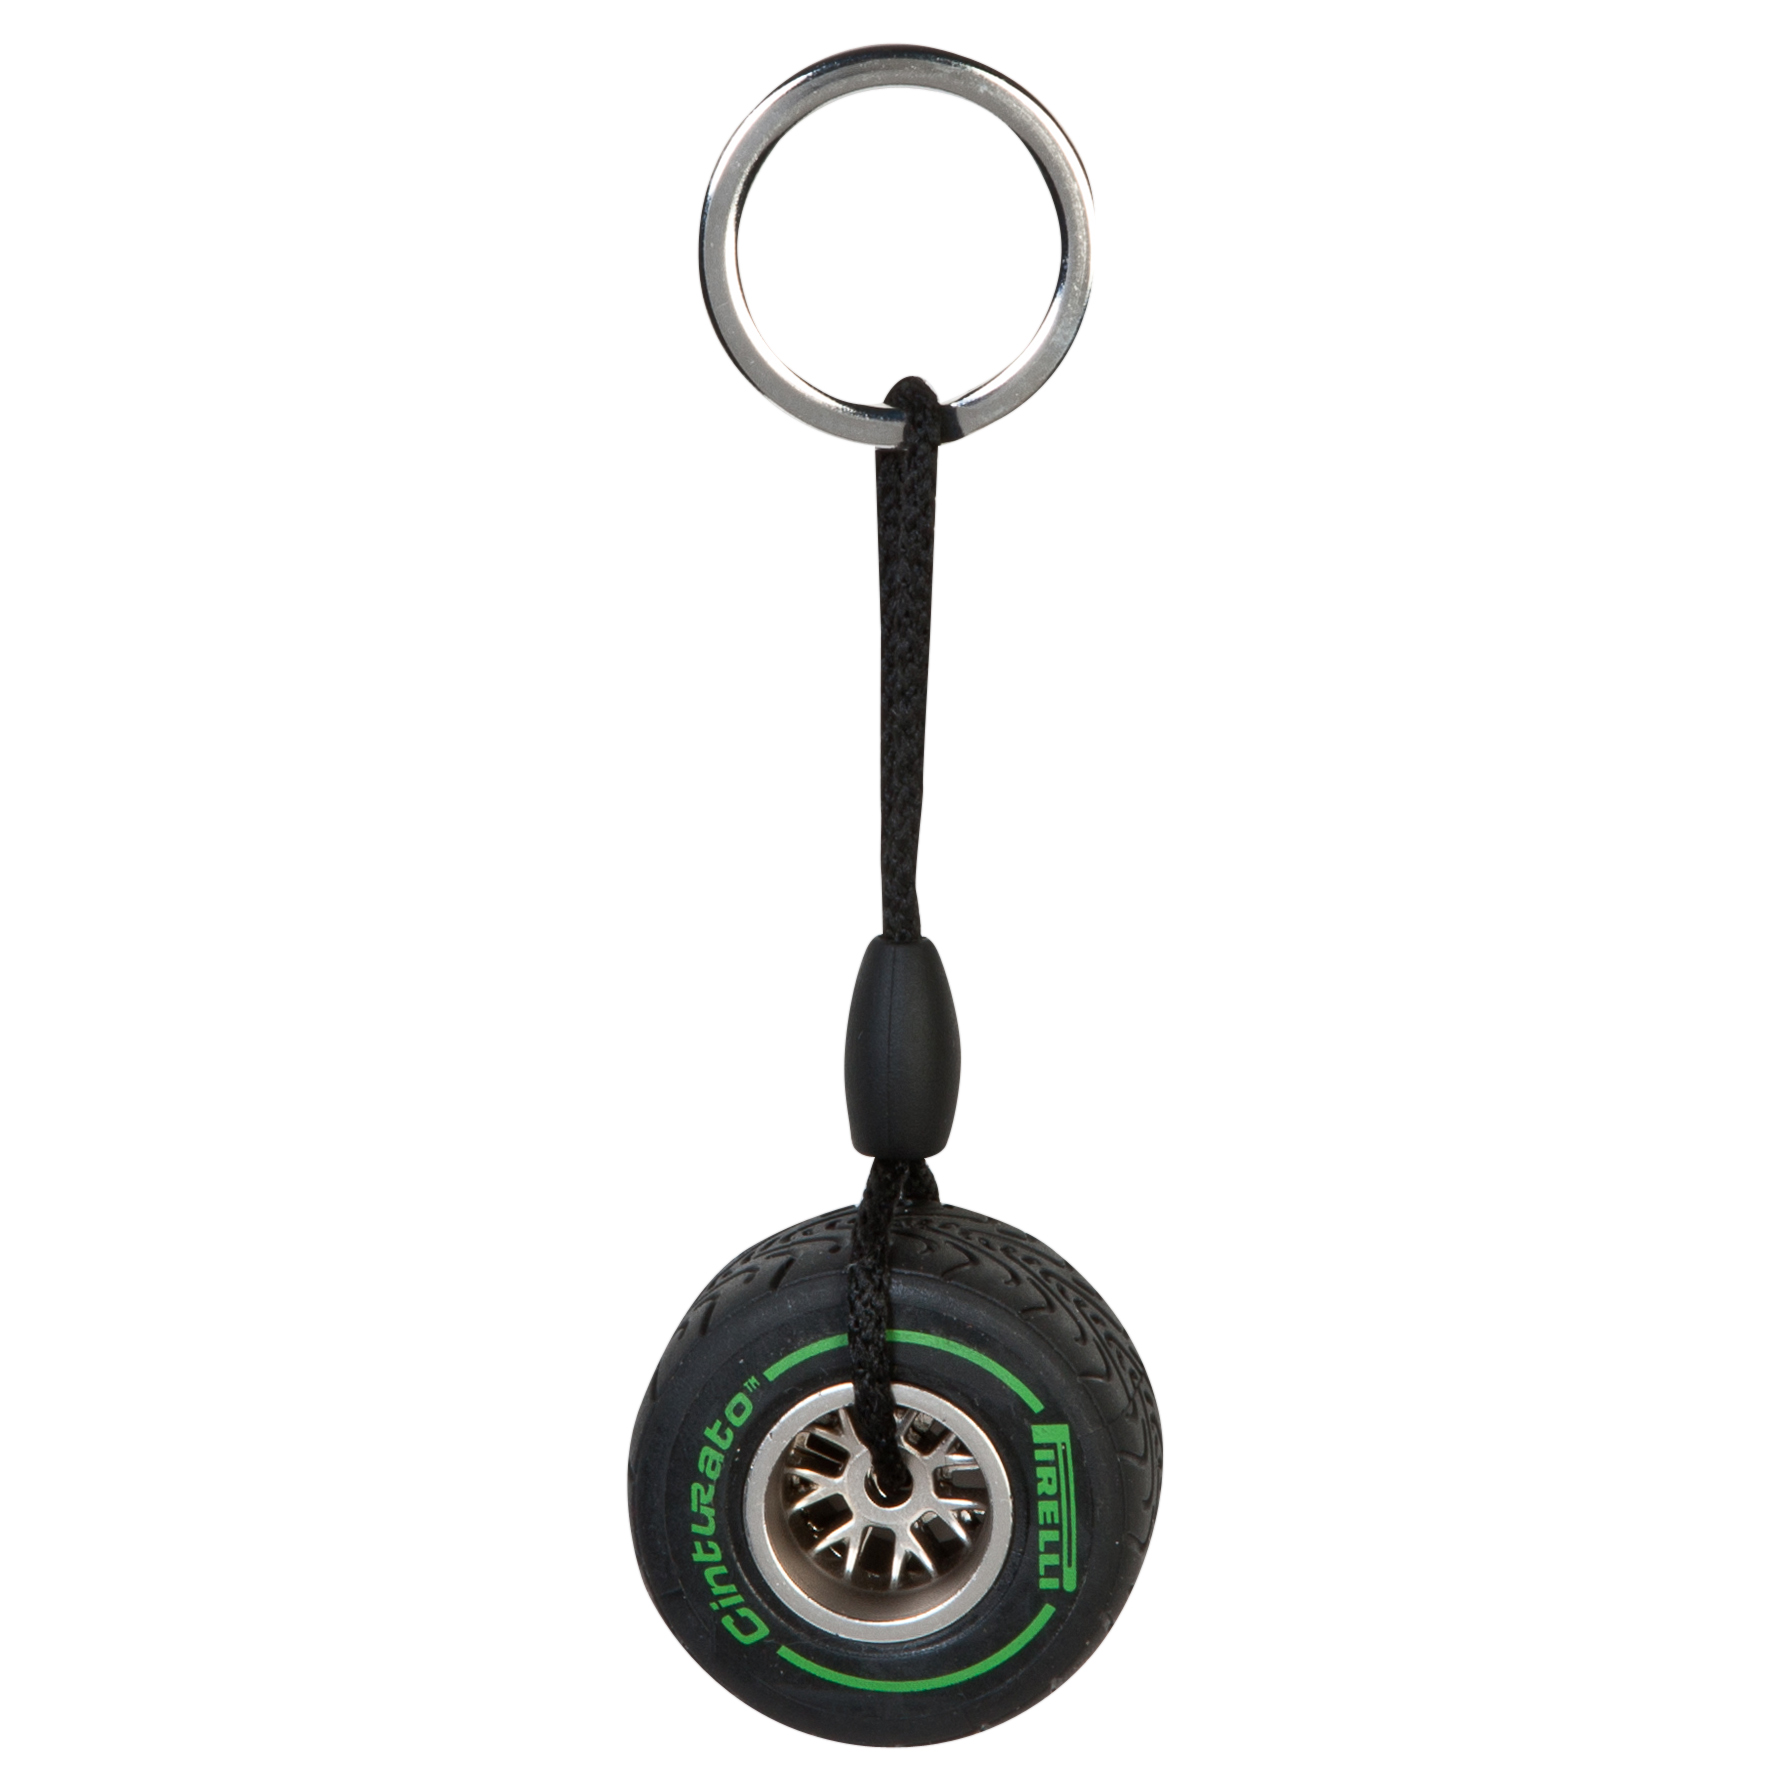 Pirelli Rim Tyre Key Ring - Intermediate Green